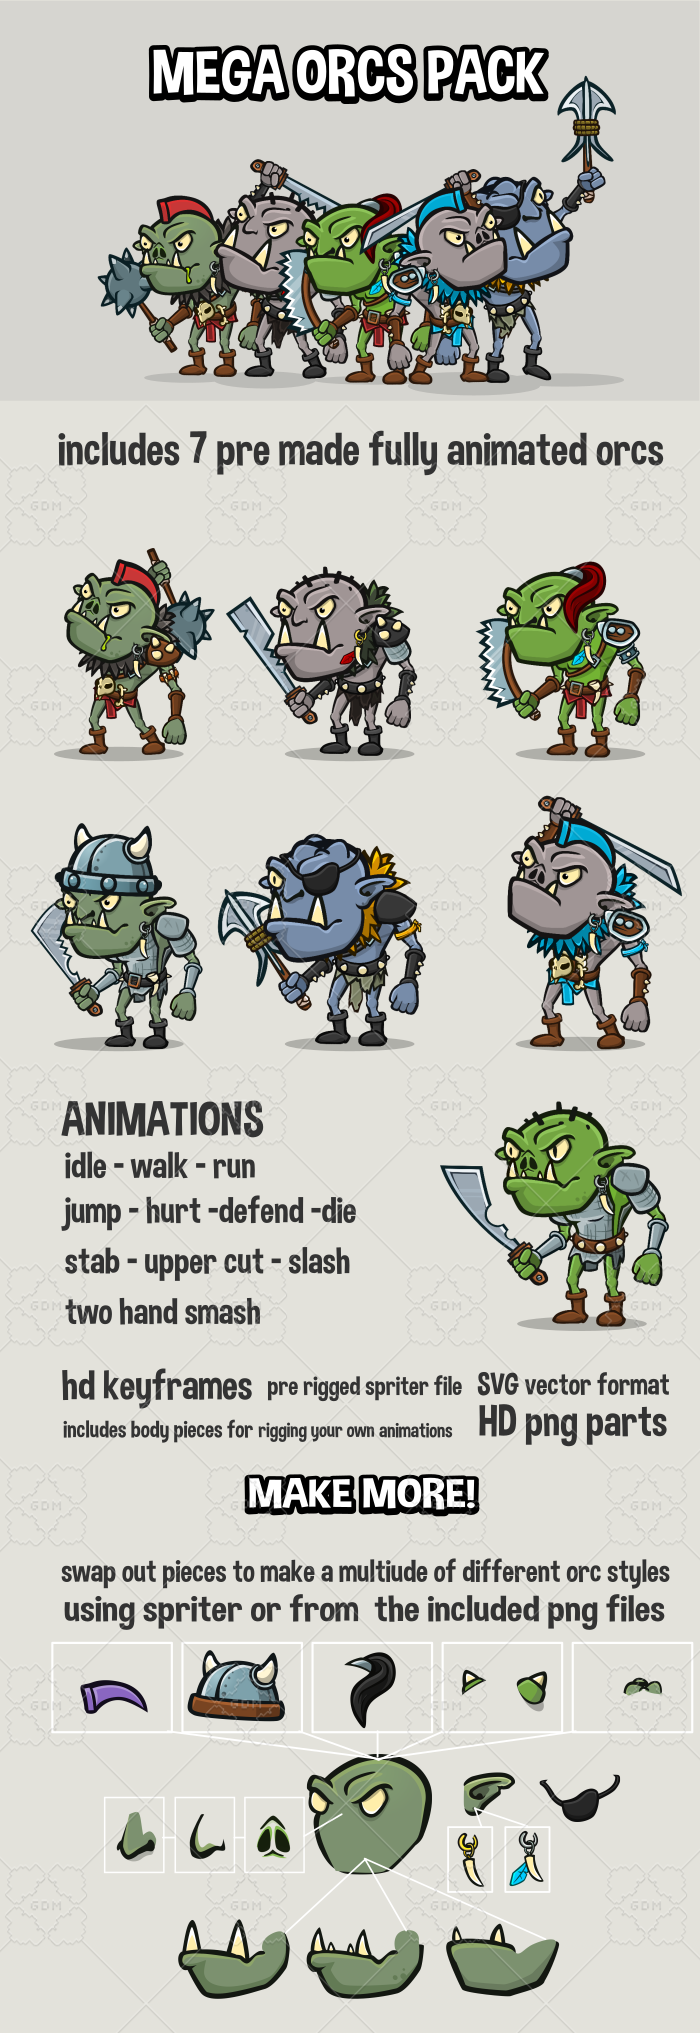 Mega animated 2d orc pack game assets